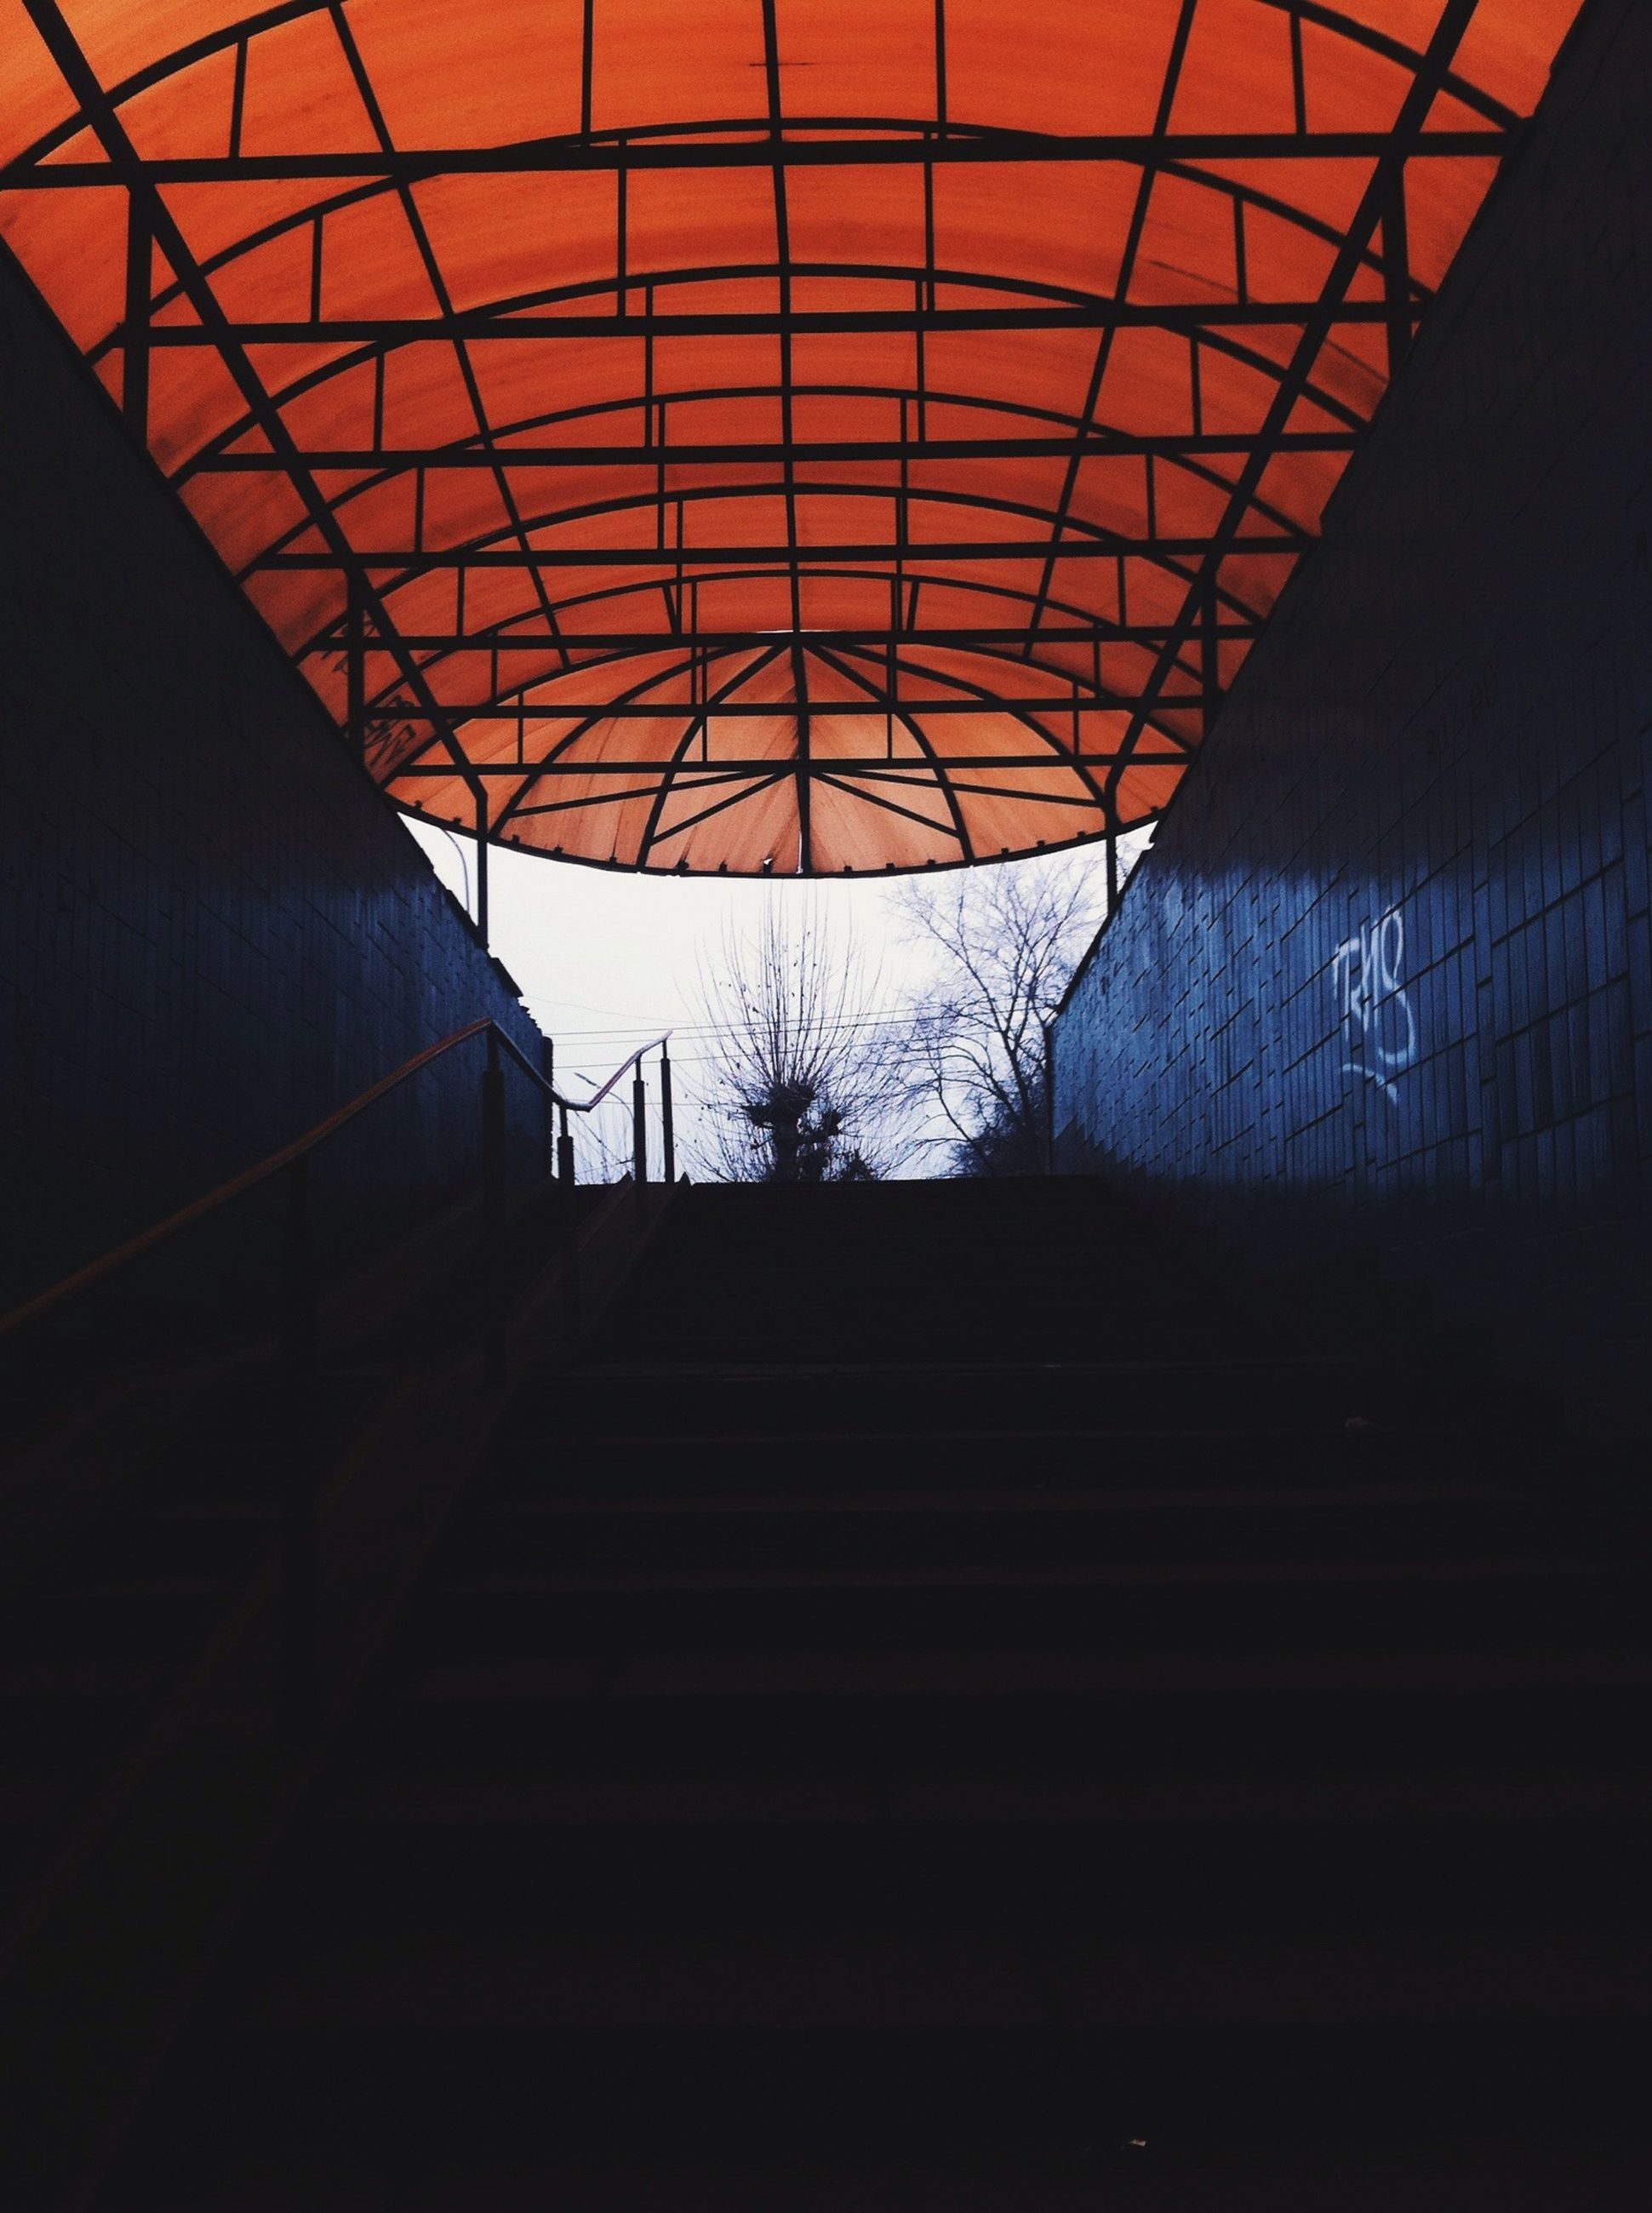 indoors, low angle view, built structure, architecture, ceiling, transportation, the way forward, no people, silhouette, steps, metal, railing, diminishing perspective, wall - building feature, building, staircase, day, illuminated, steps and staircases, connection